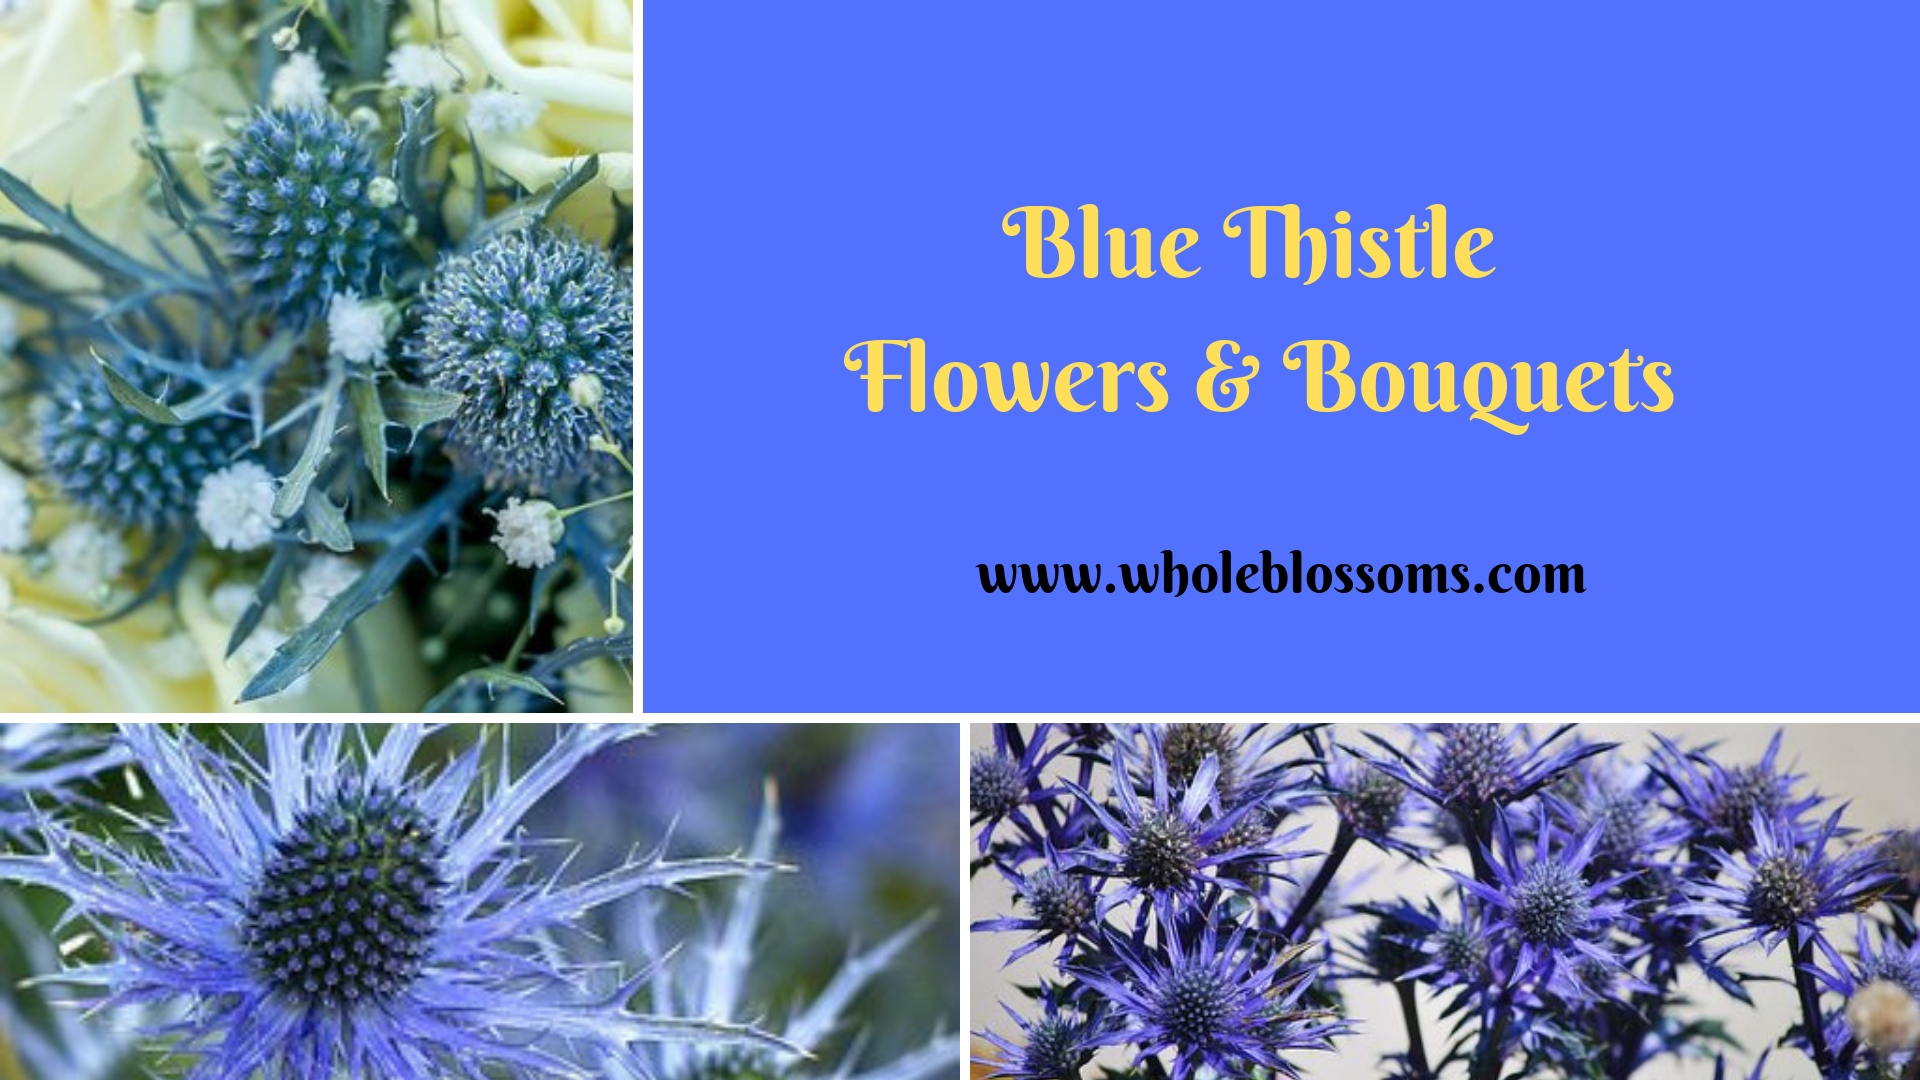 Order Blue Thistle Flowers and Bouquets from Whole Blossoms